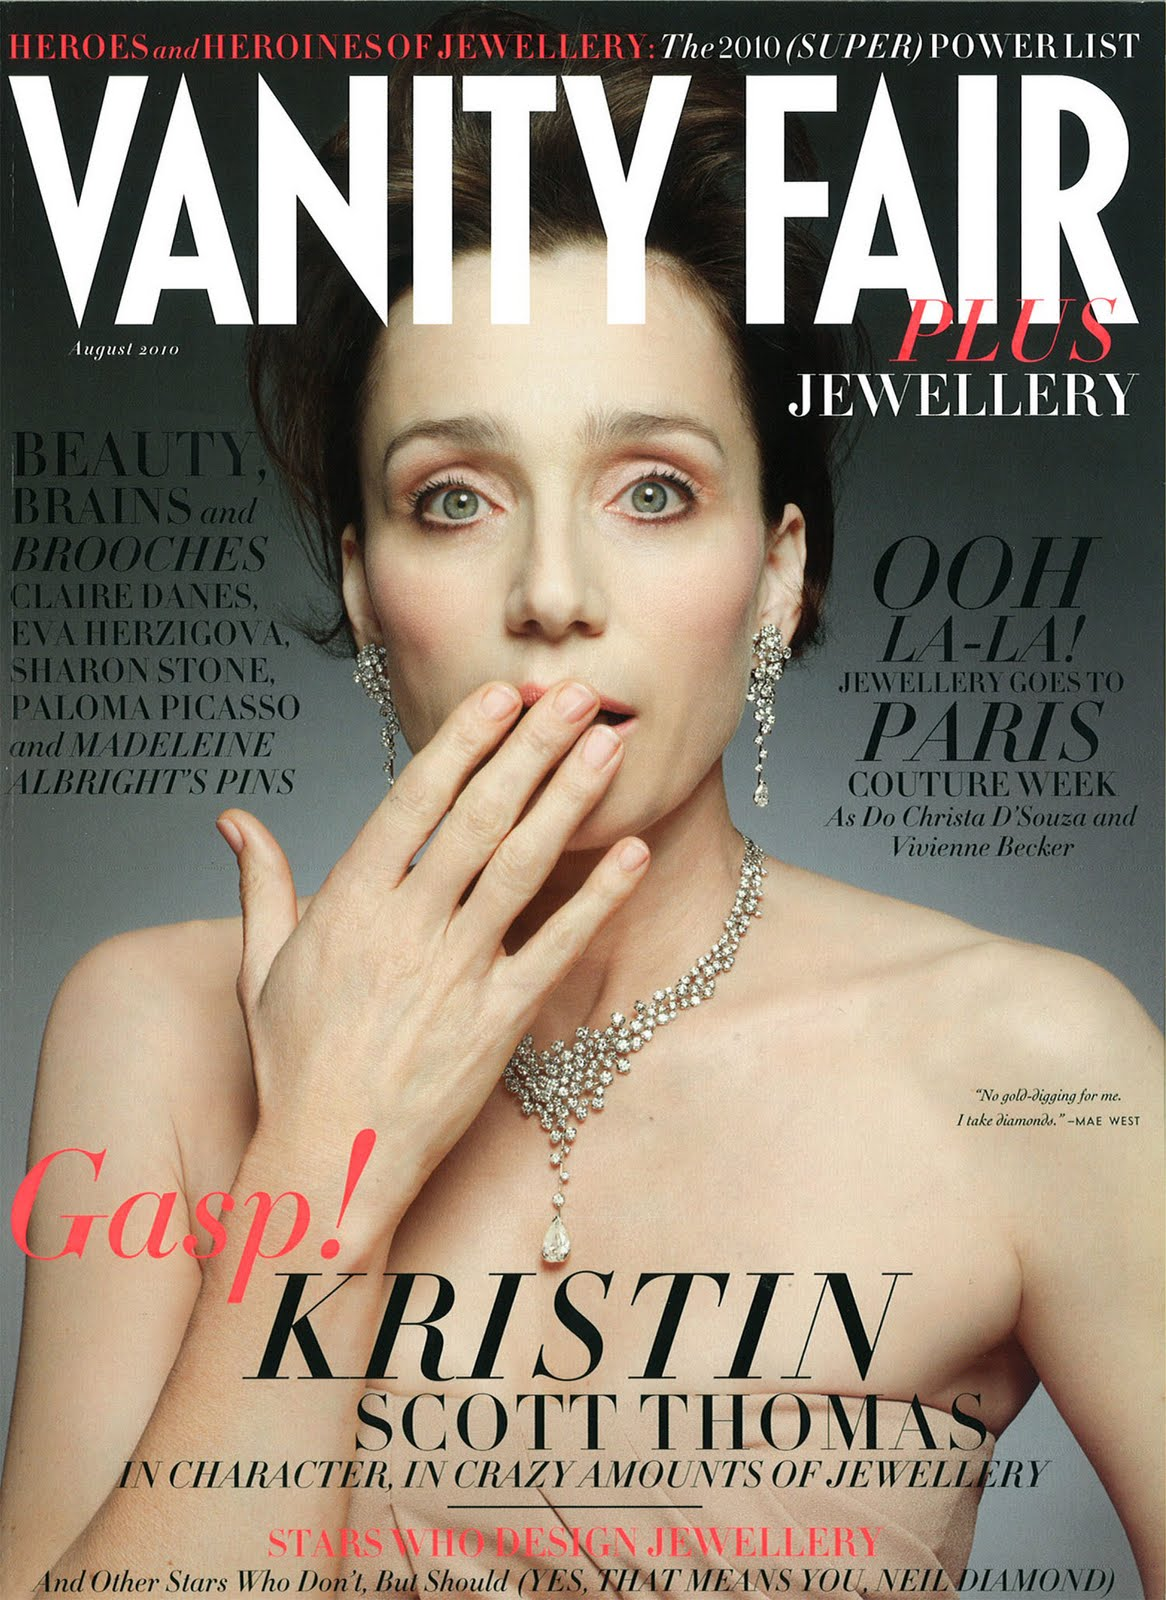 says vanity fair covers